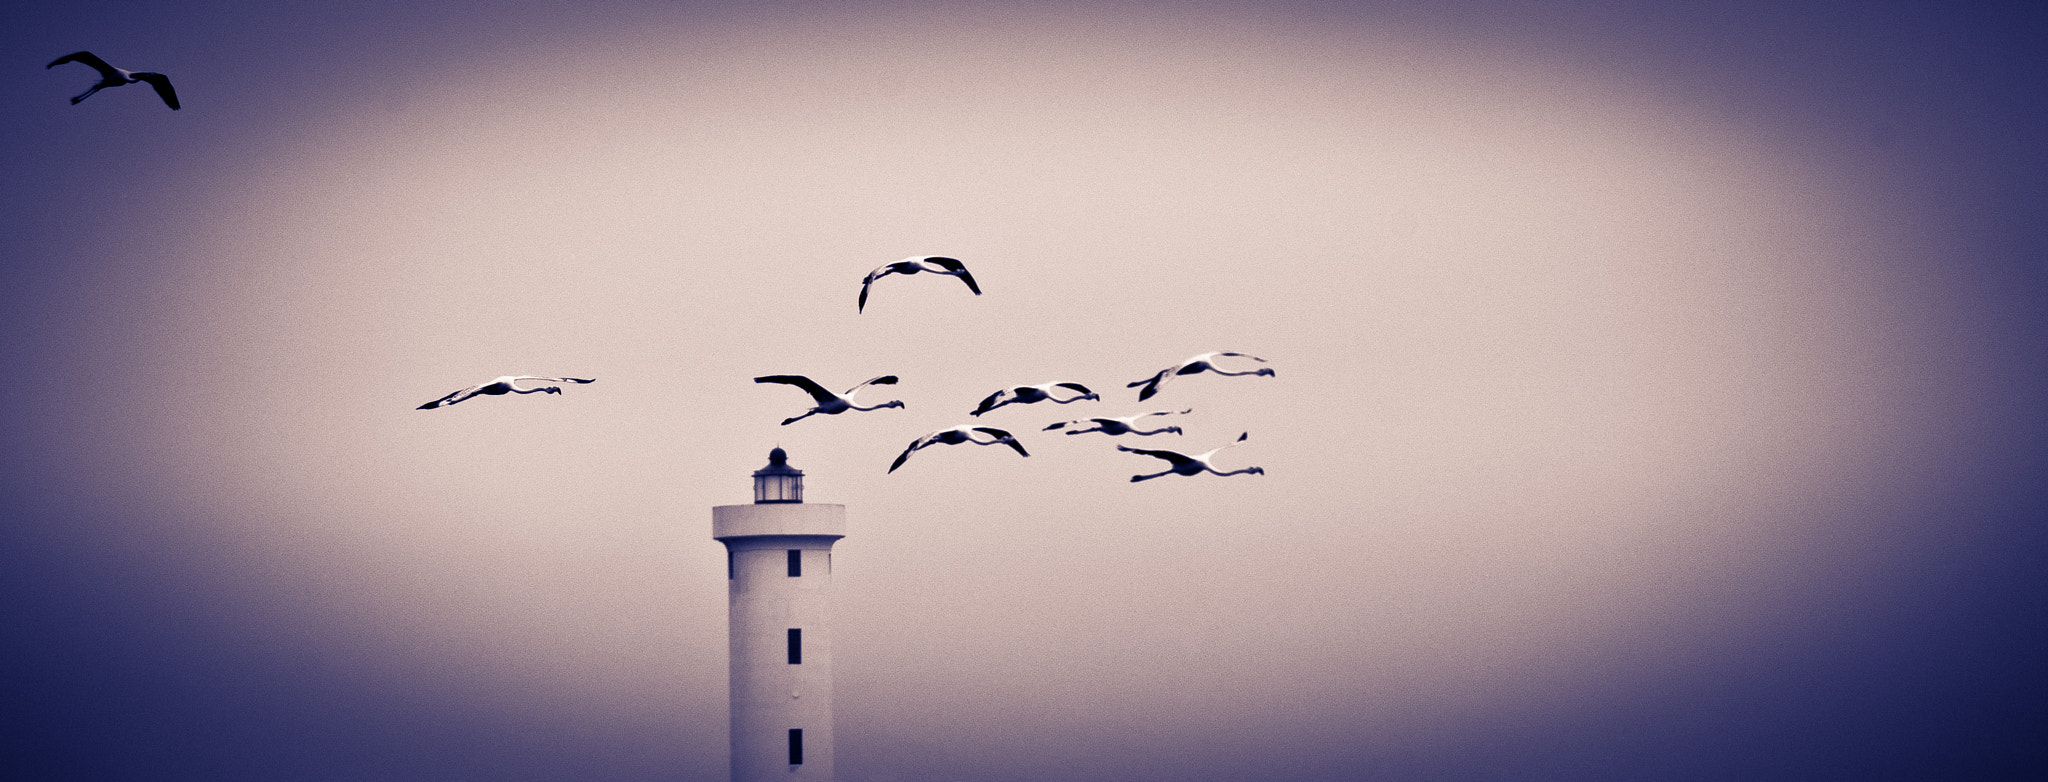 Photograph Flamingoes over light house by Mike Fisher on 500px